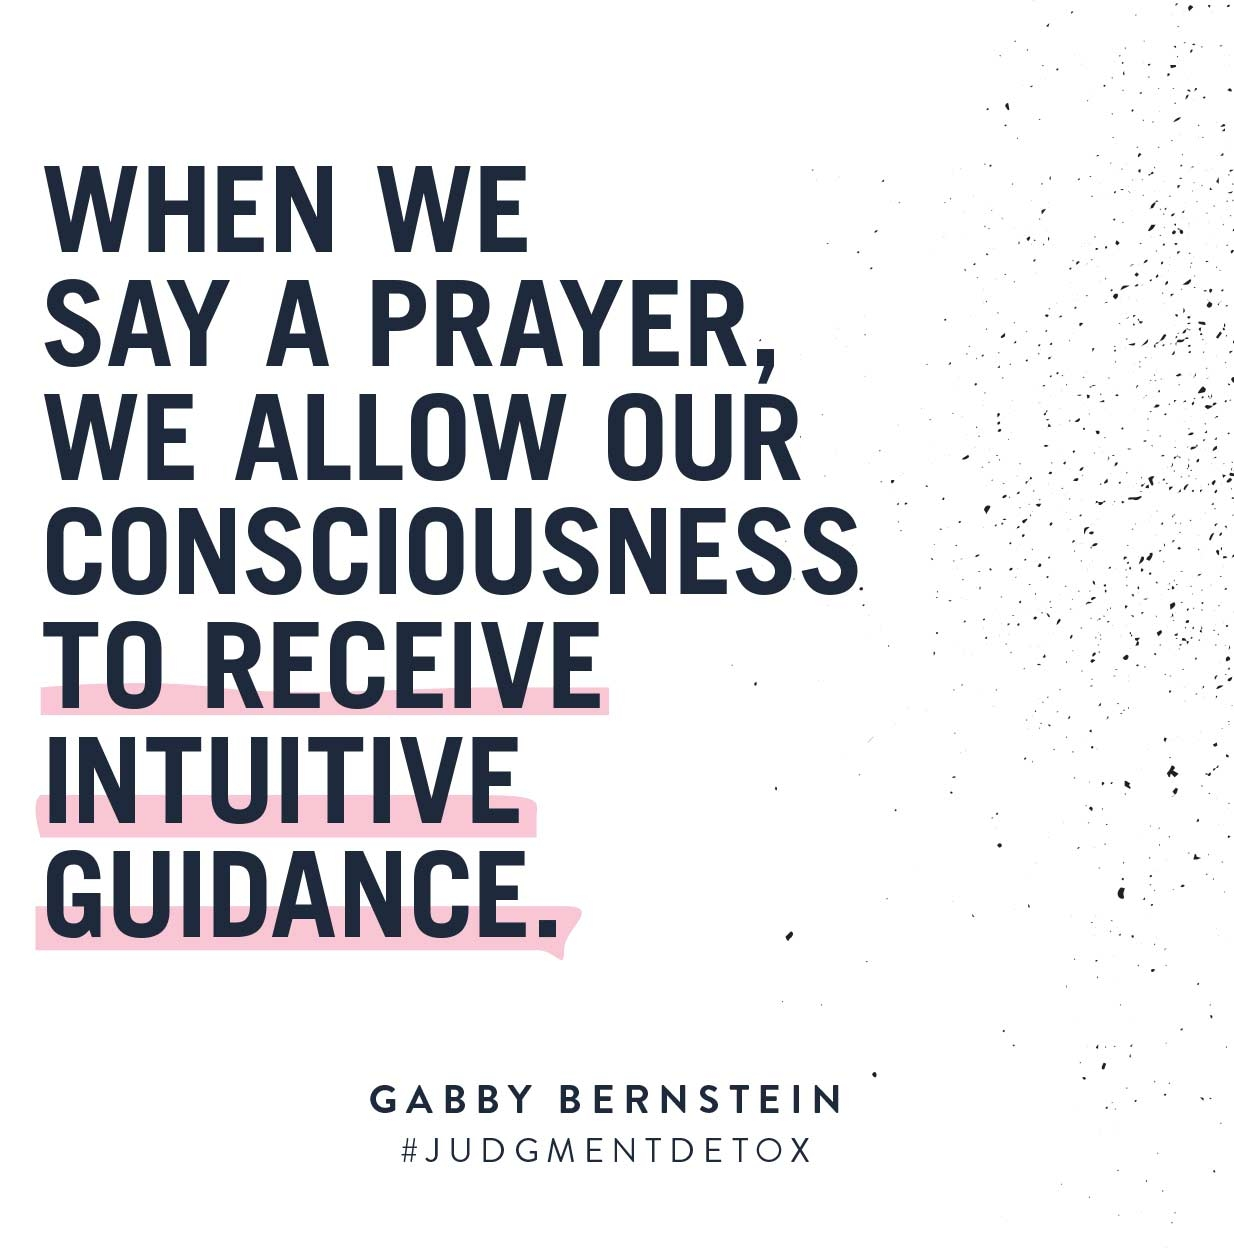 pray to release judgment gabby bernstein judgment detox